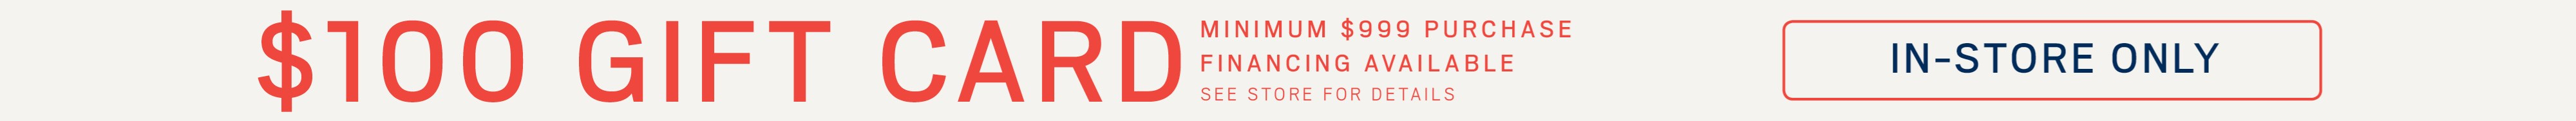 $100 gift card with minimum $999 purchase; financing available. See store for details.